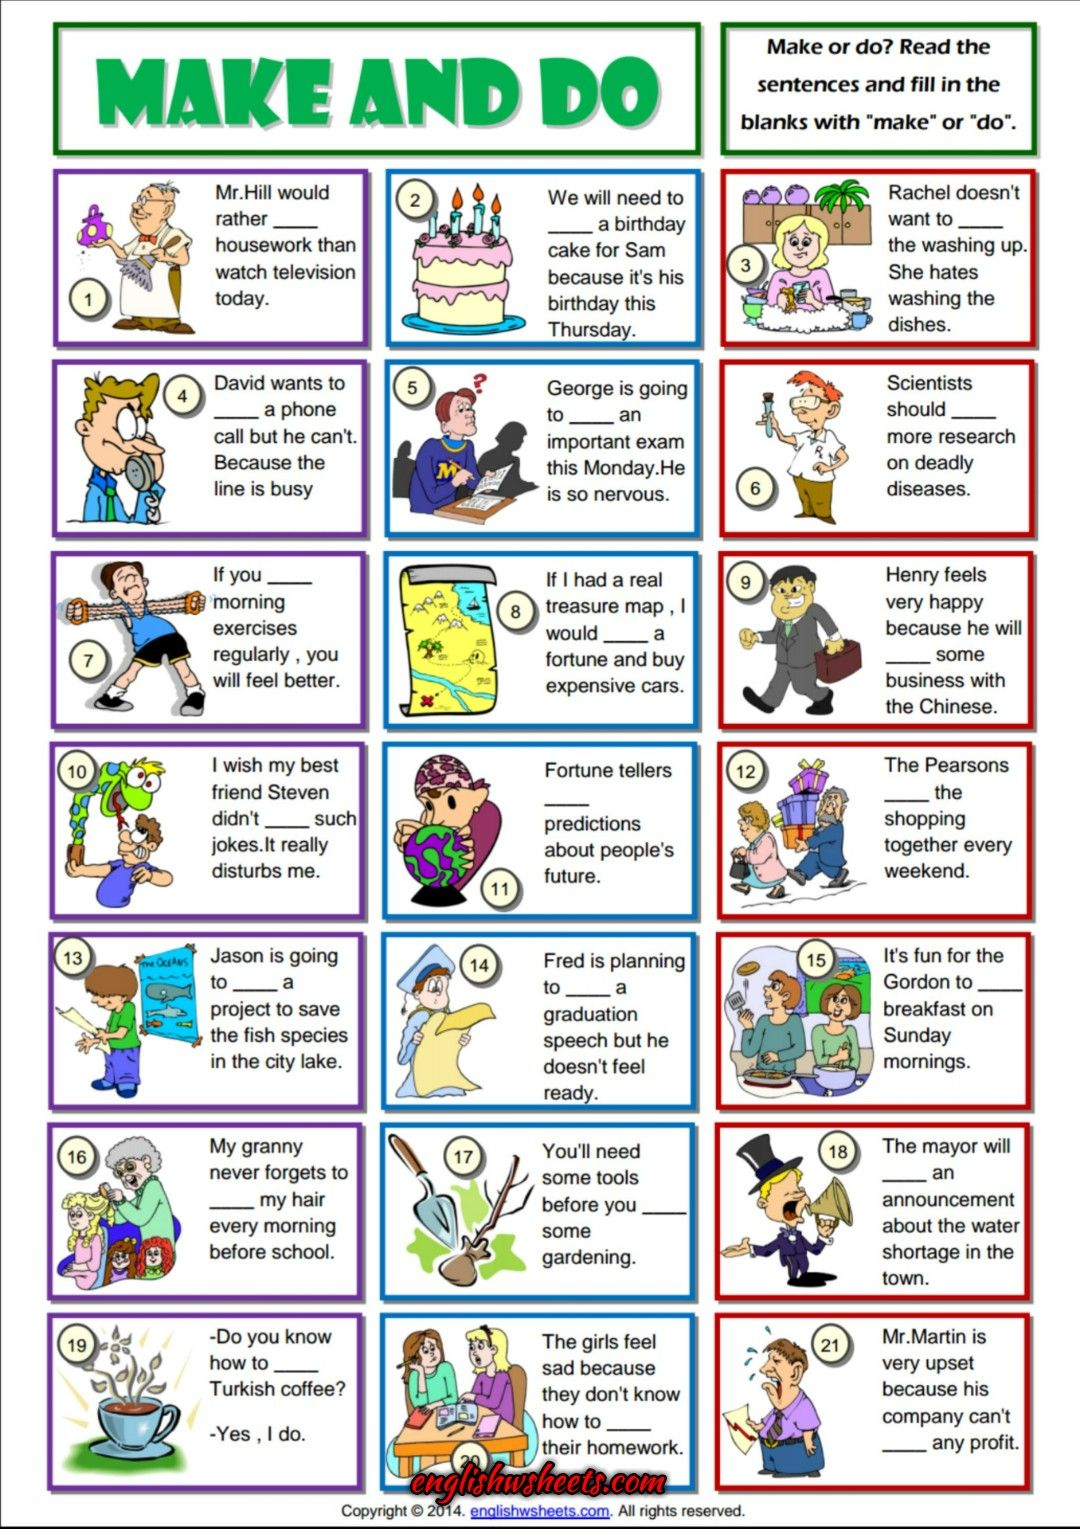 Make And Do Collocation Esl Grammar Exercise Worksheet English Lessons English Teaching Resources English Exercises [ 1529 x 1080 Pixel ]